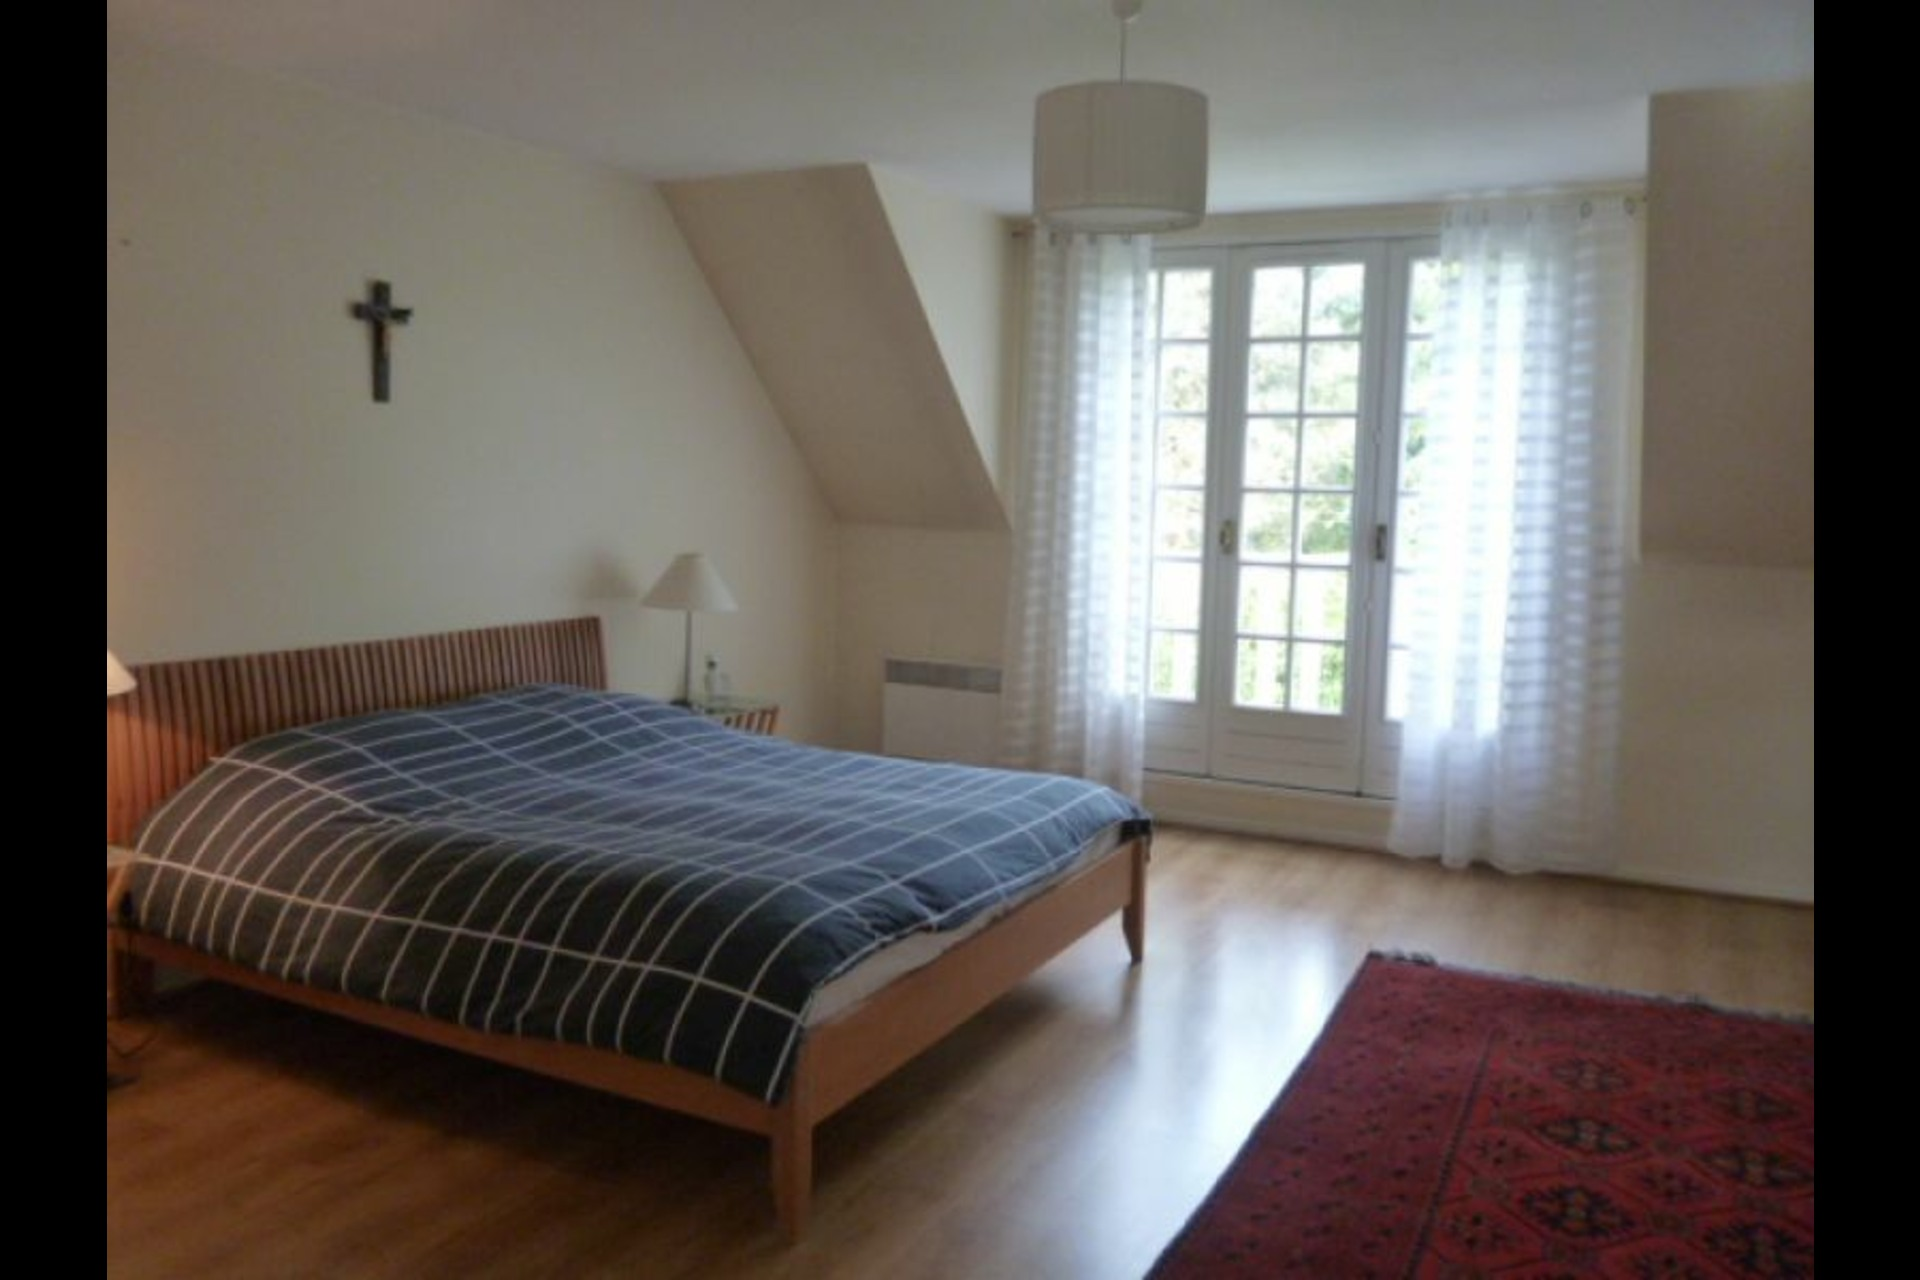 image 3 - House For rent feucherolles - 6 rooms